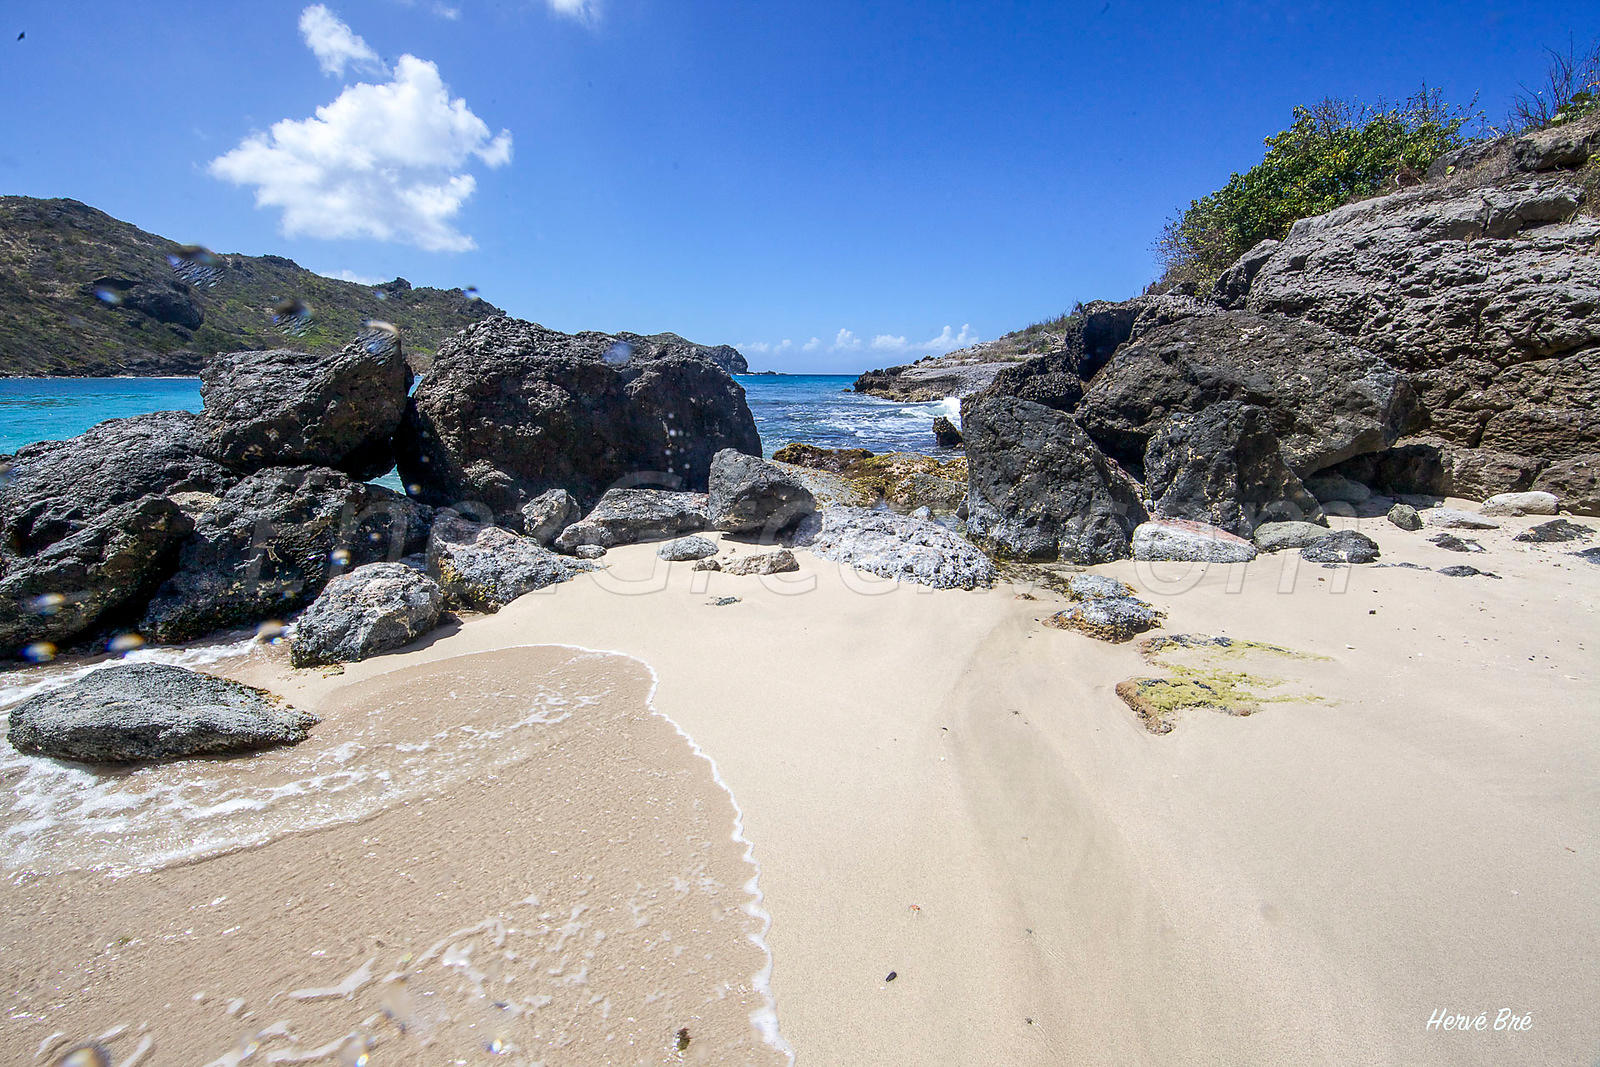 Saint-Barthélemy sandy beach